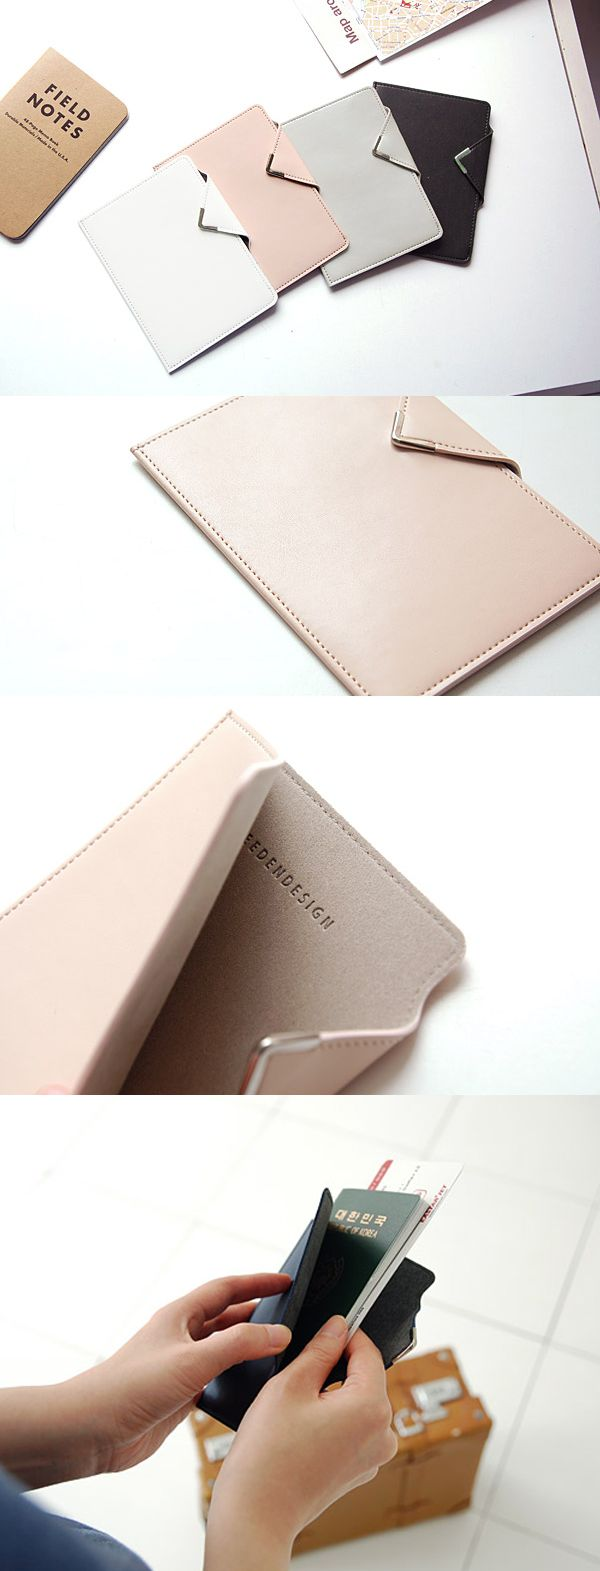 How chic! The simple design and classy touches make this passport holder super cute and elegant! Always travel in style. ^.~*